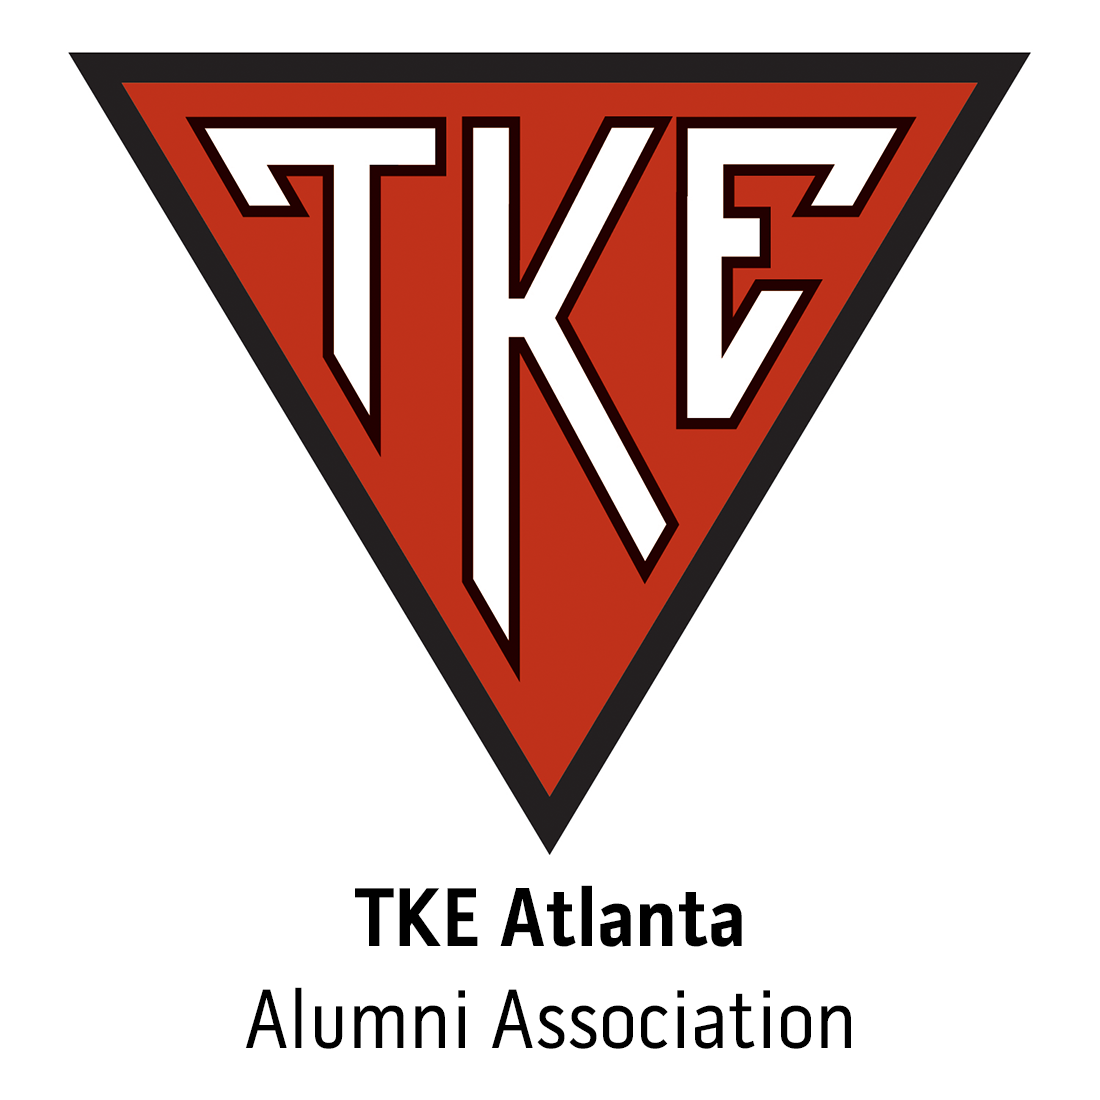 TKE Atlanta Alumni Association at Atlanta, GA